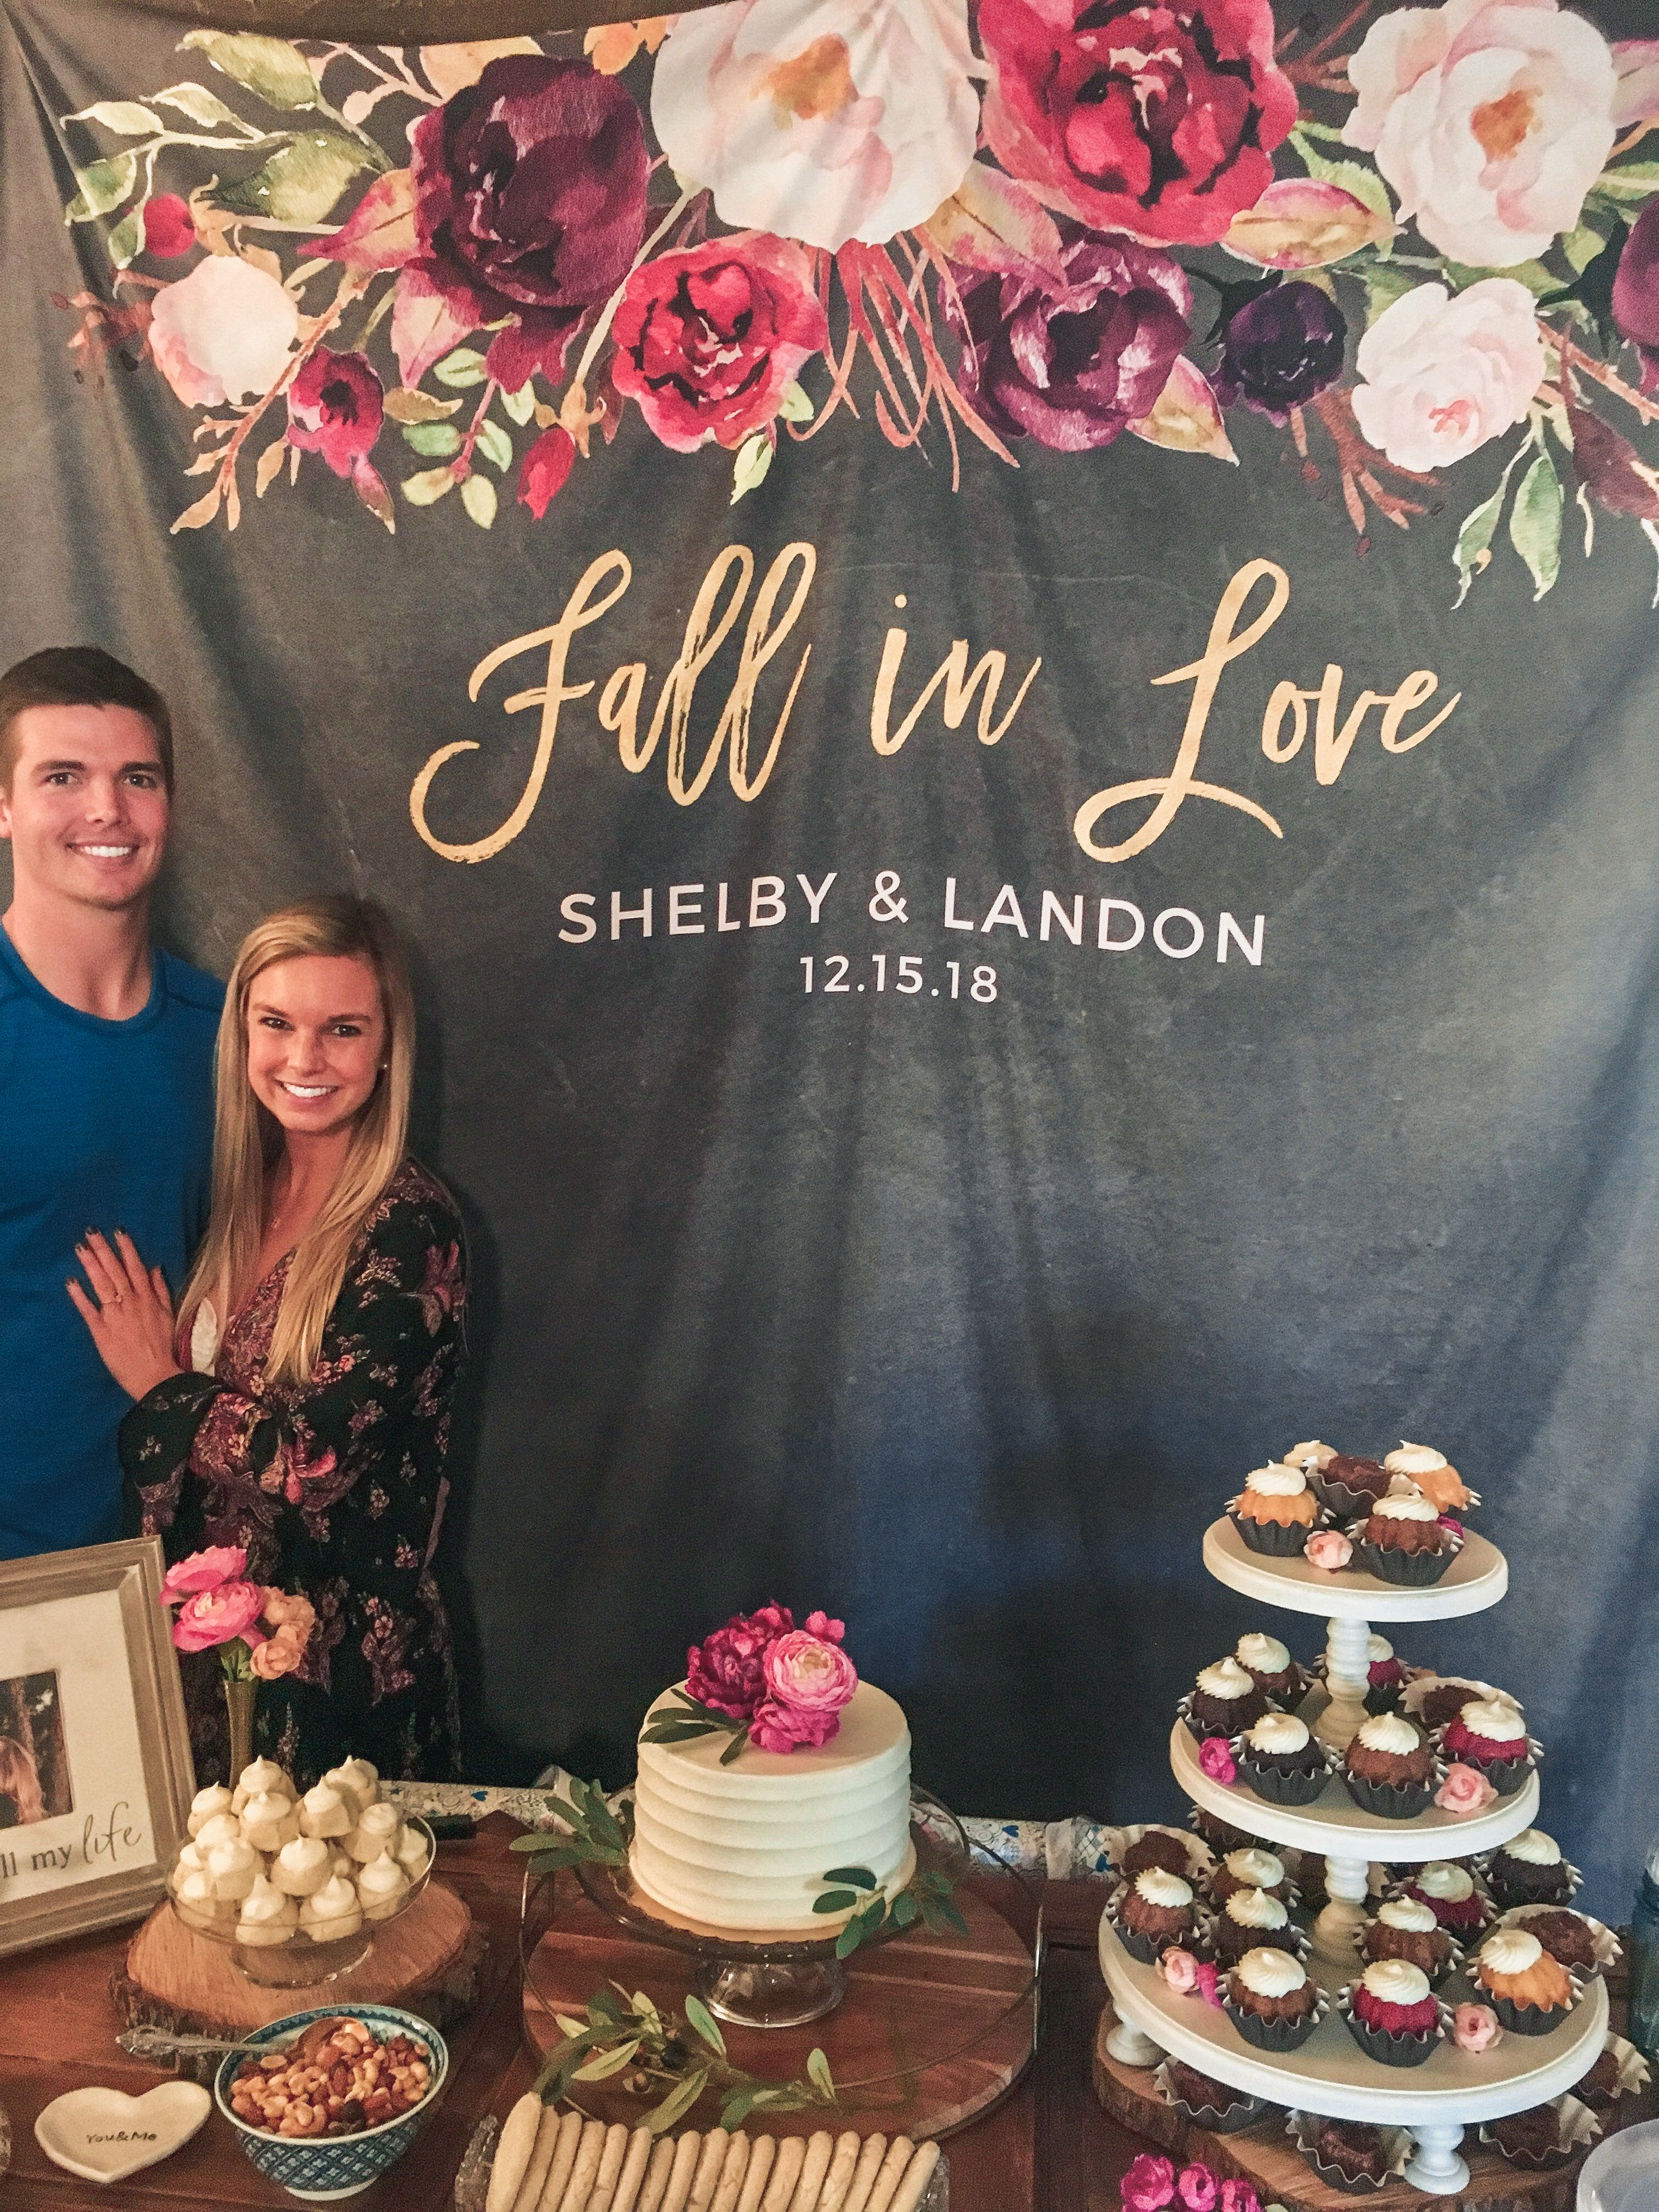 Fall In Love Wedding Banner Autumn Wedding Photo Booth Backdrop Fall Engagement Party Decorations Engagement Party Decorations Fall Engagement Parties